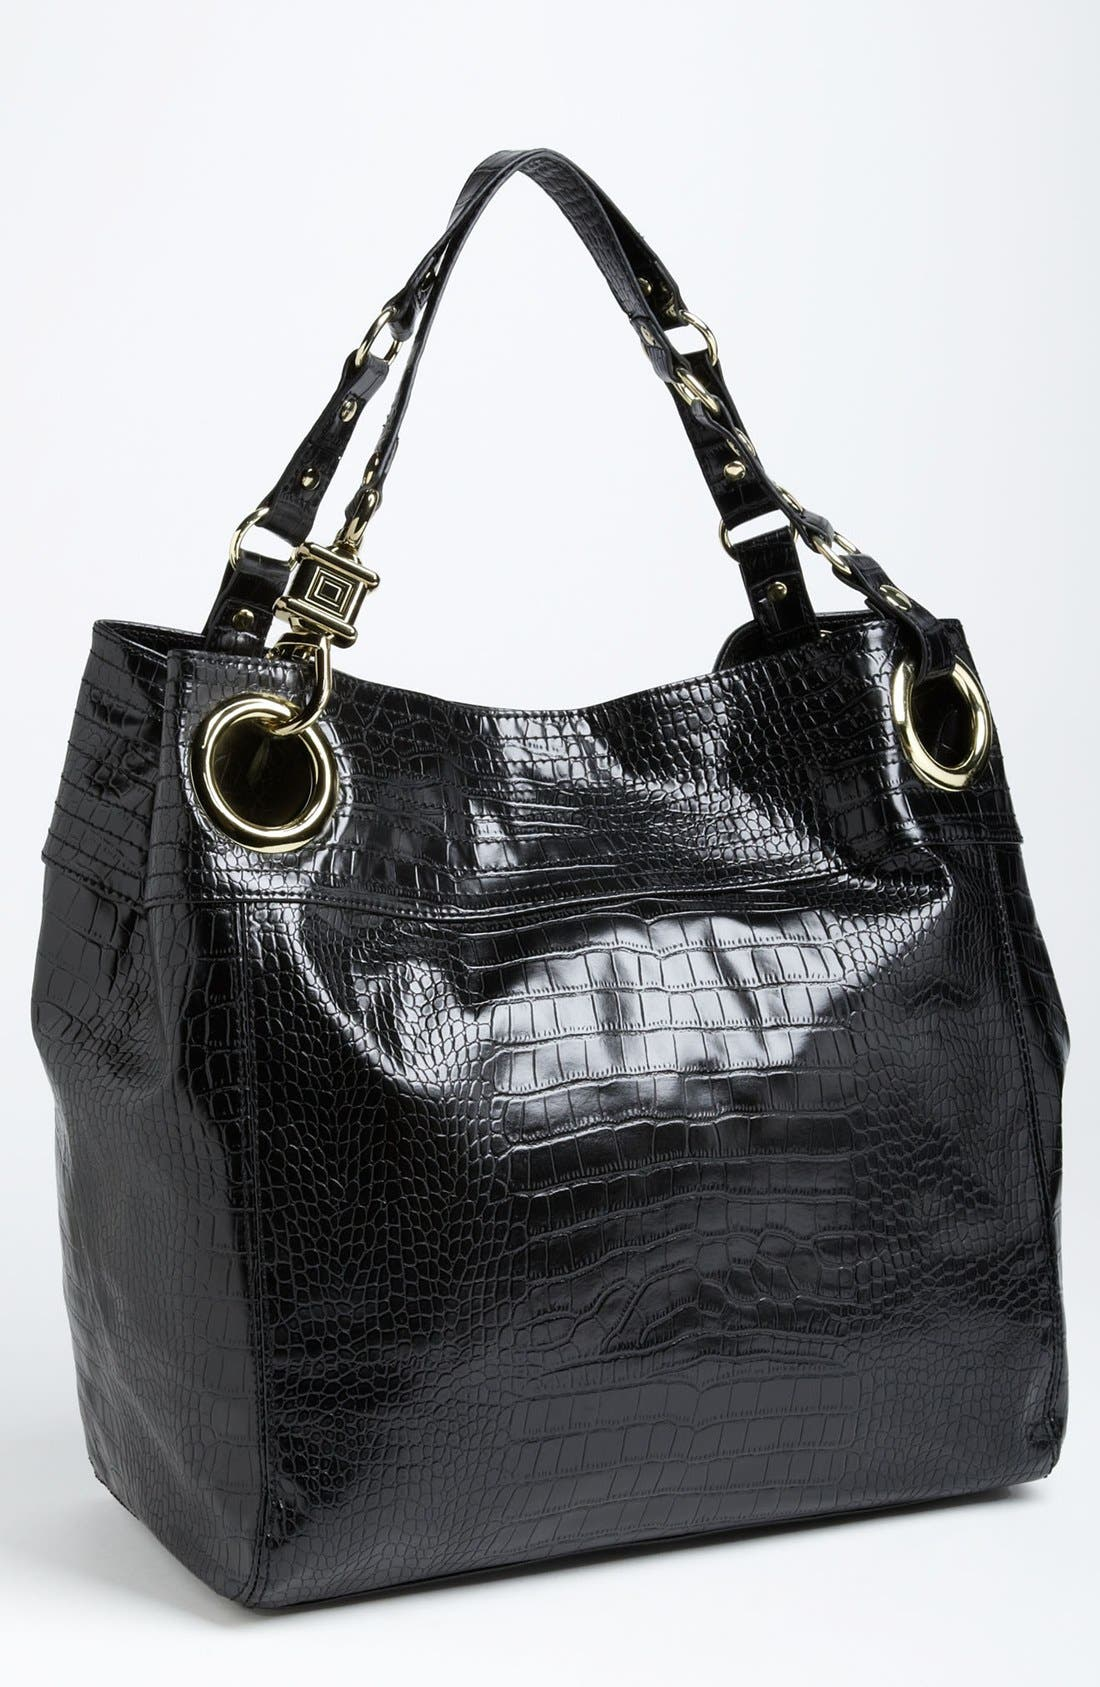 Main Image - Steven by Steve Madden 'Candy Coated' Croc Embossed Tote